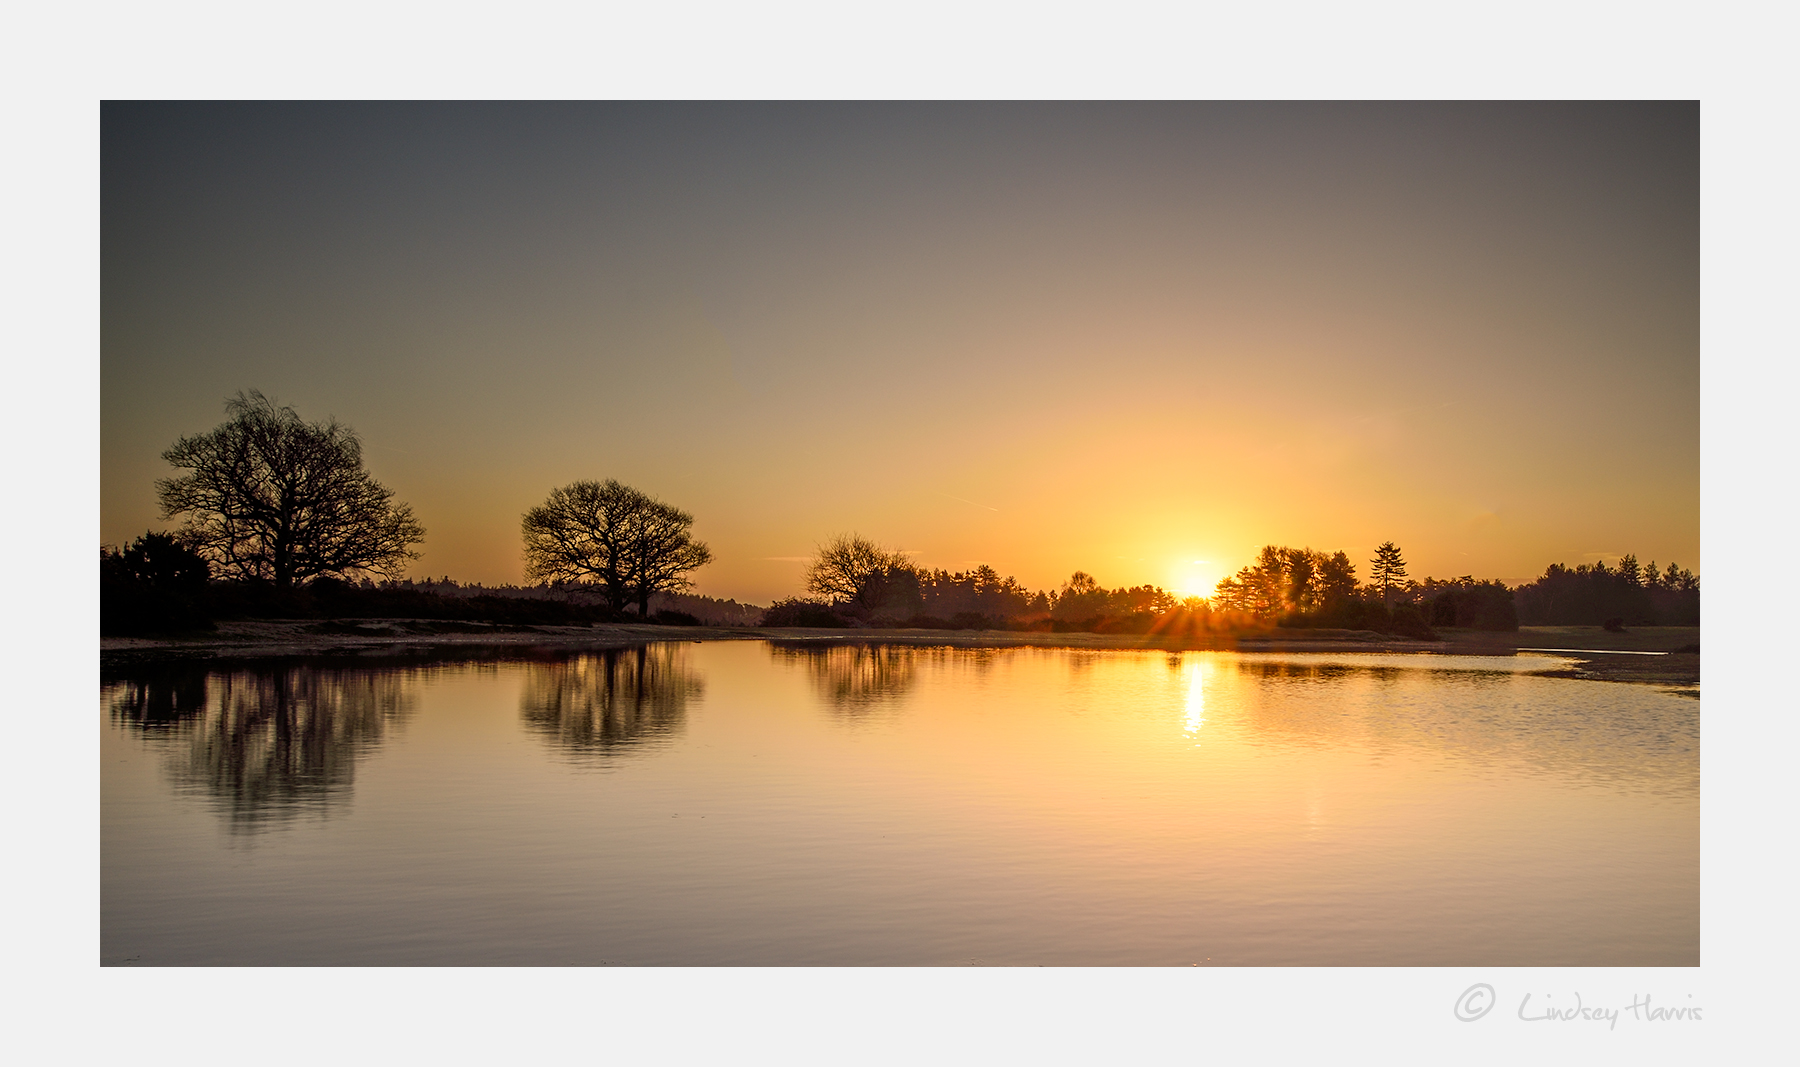 Sunrise at Mogshade Pond, New Forest - 2nd January 2017.